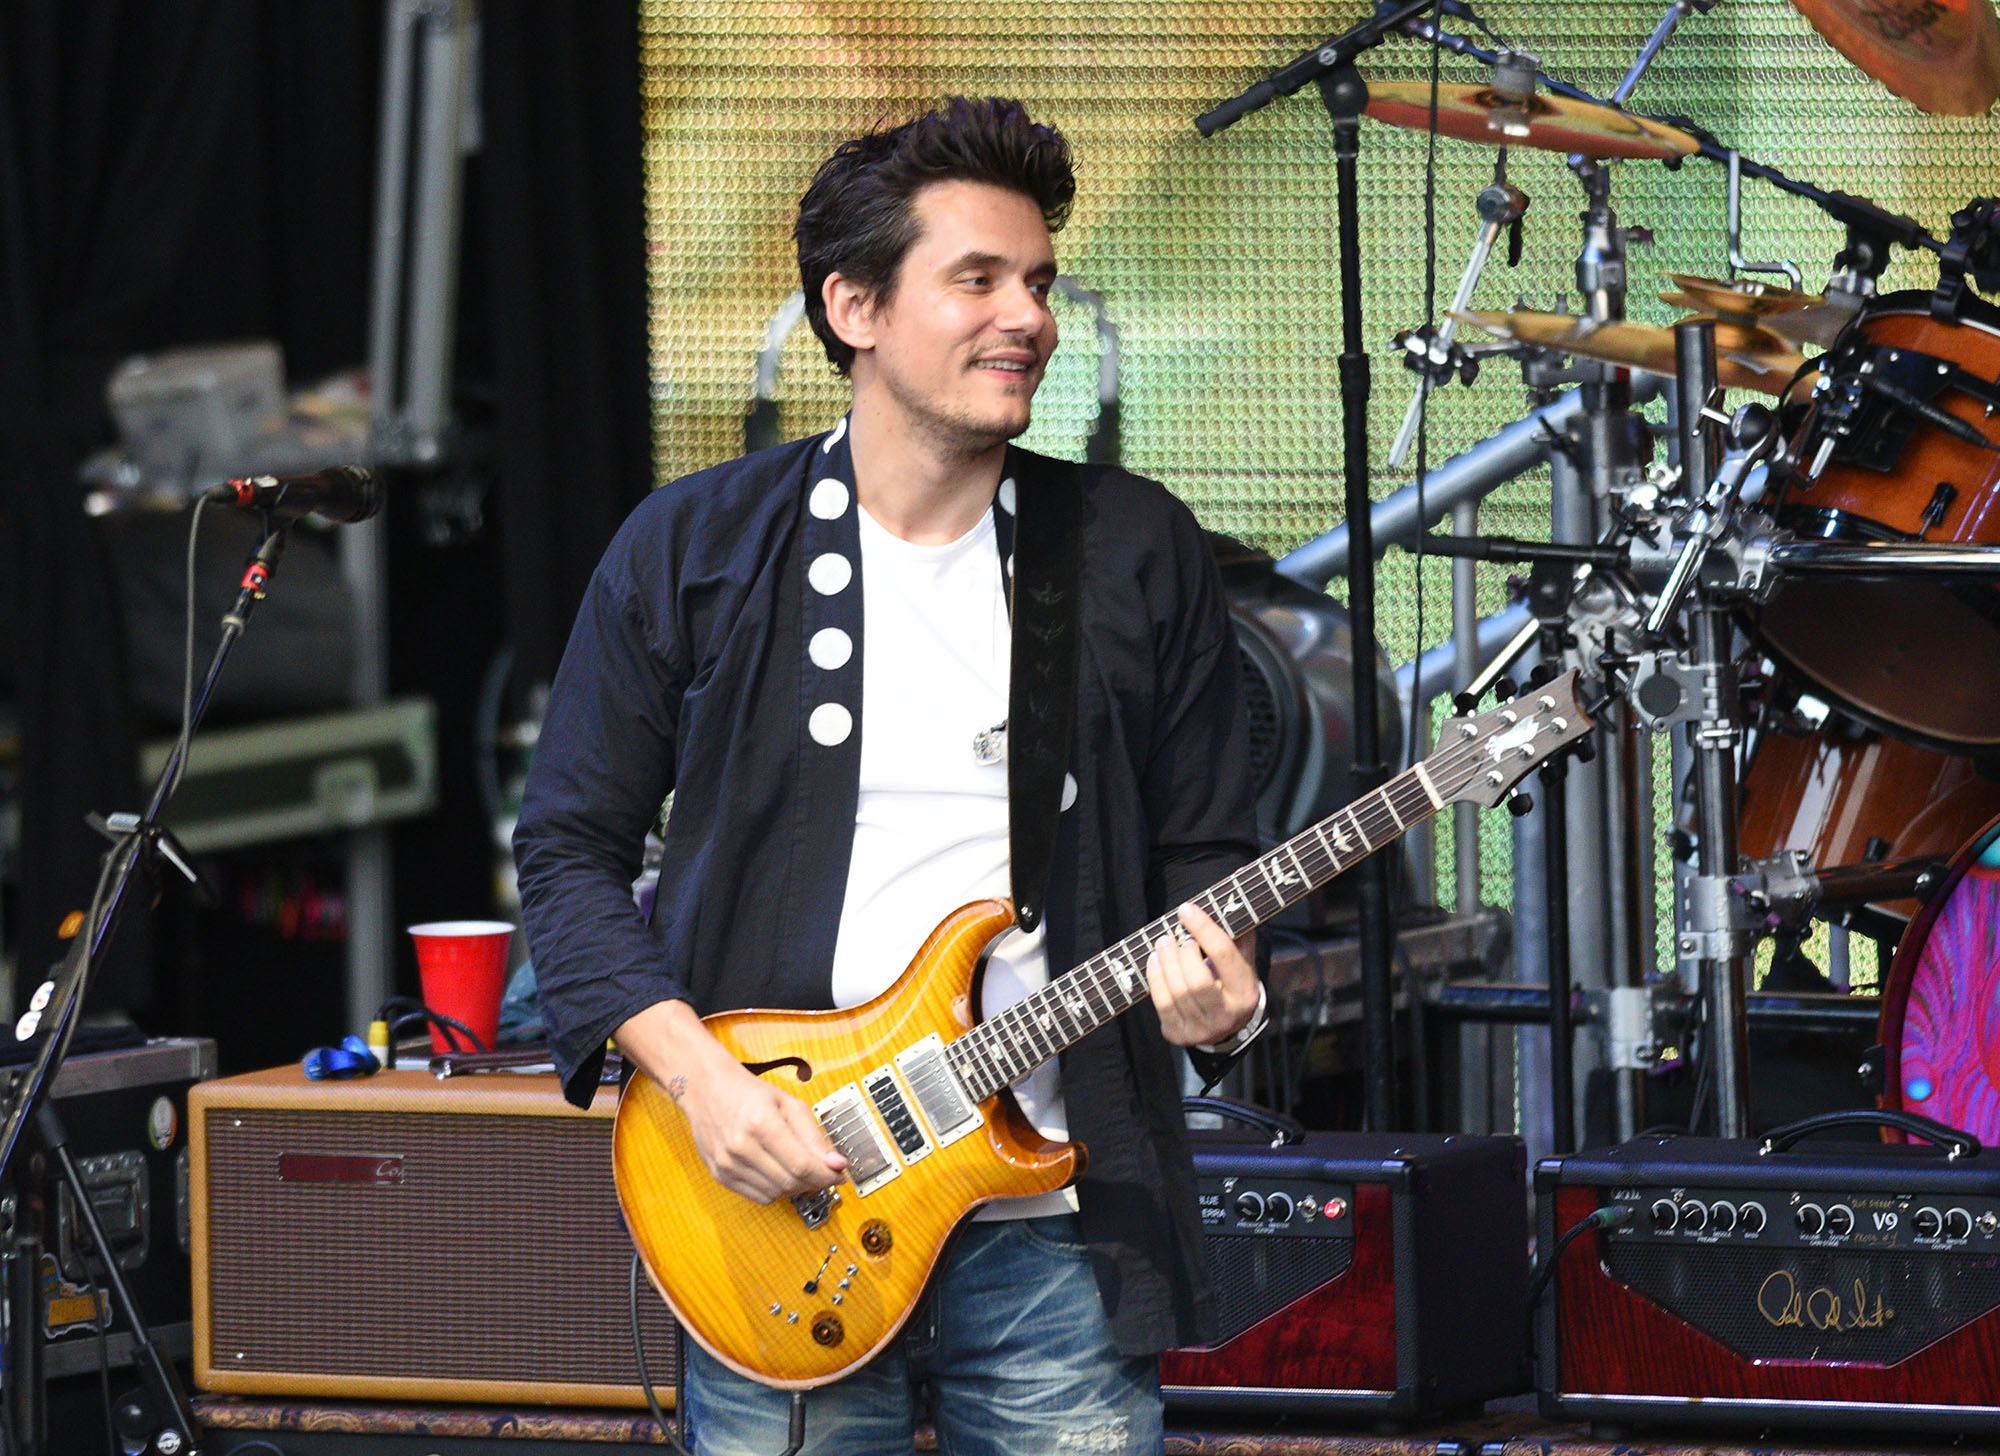 John Mayer of Dead and Company performs during the 2016 summer tour closing show at Shoreline Amphitheatre on July 30, 2016 in Mountain View, California